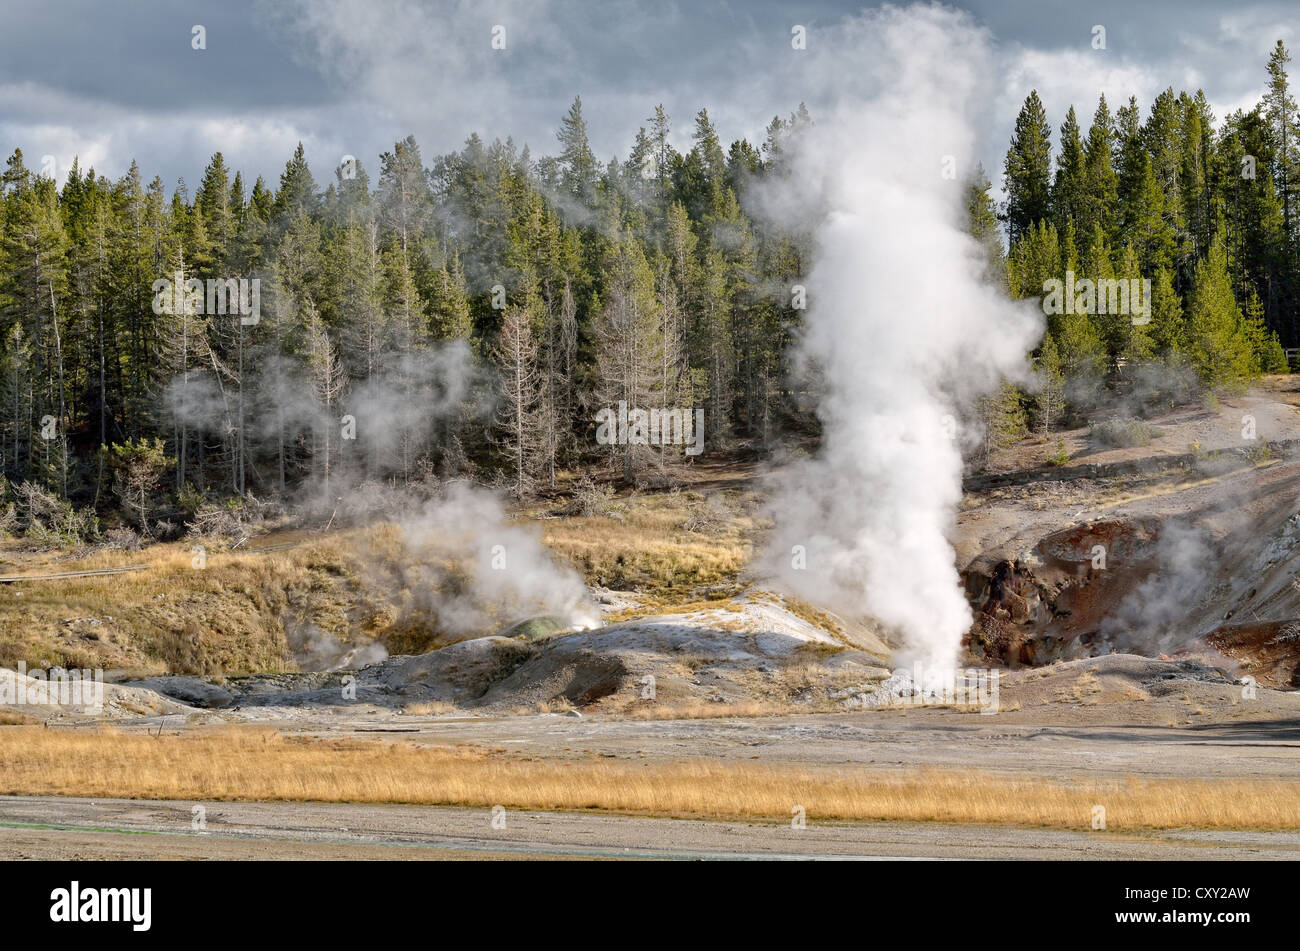 Black Growler Steam Vent, Porcelain Basin, Norris Geyser Basin, Yellowstone National Park, Wyoming, USA - Stock Image